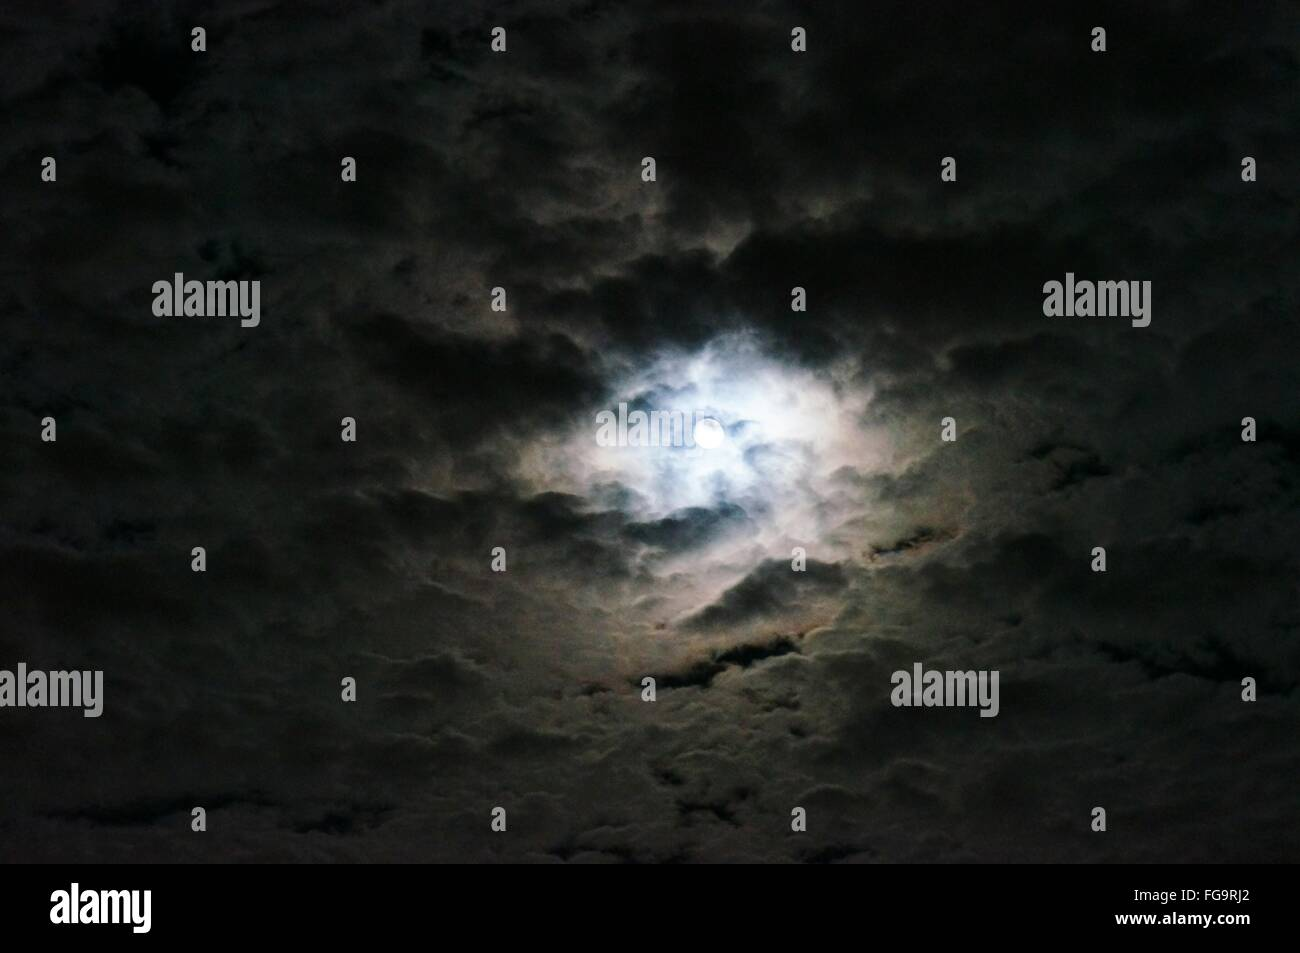 Low Angle View Of Cloudy Sky At Night - Stock Image